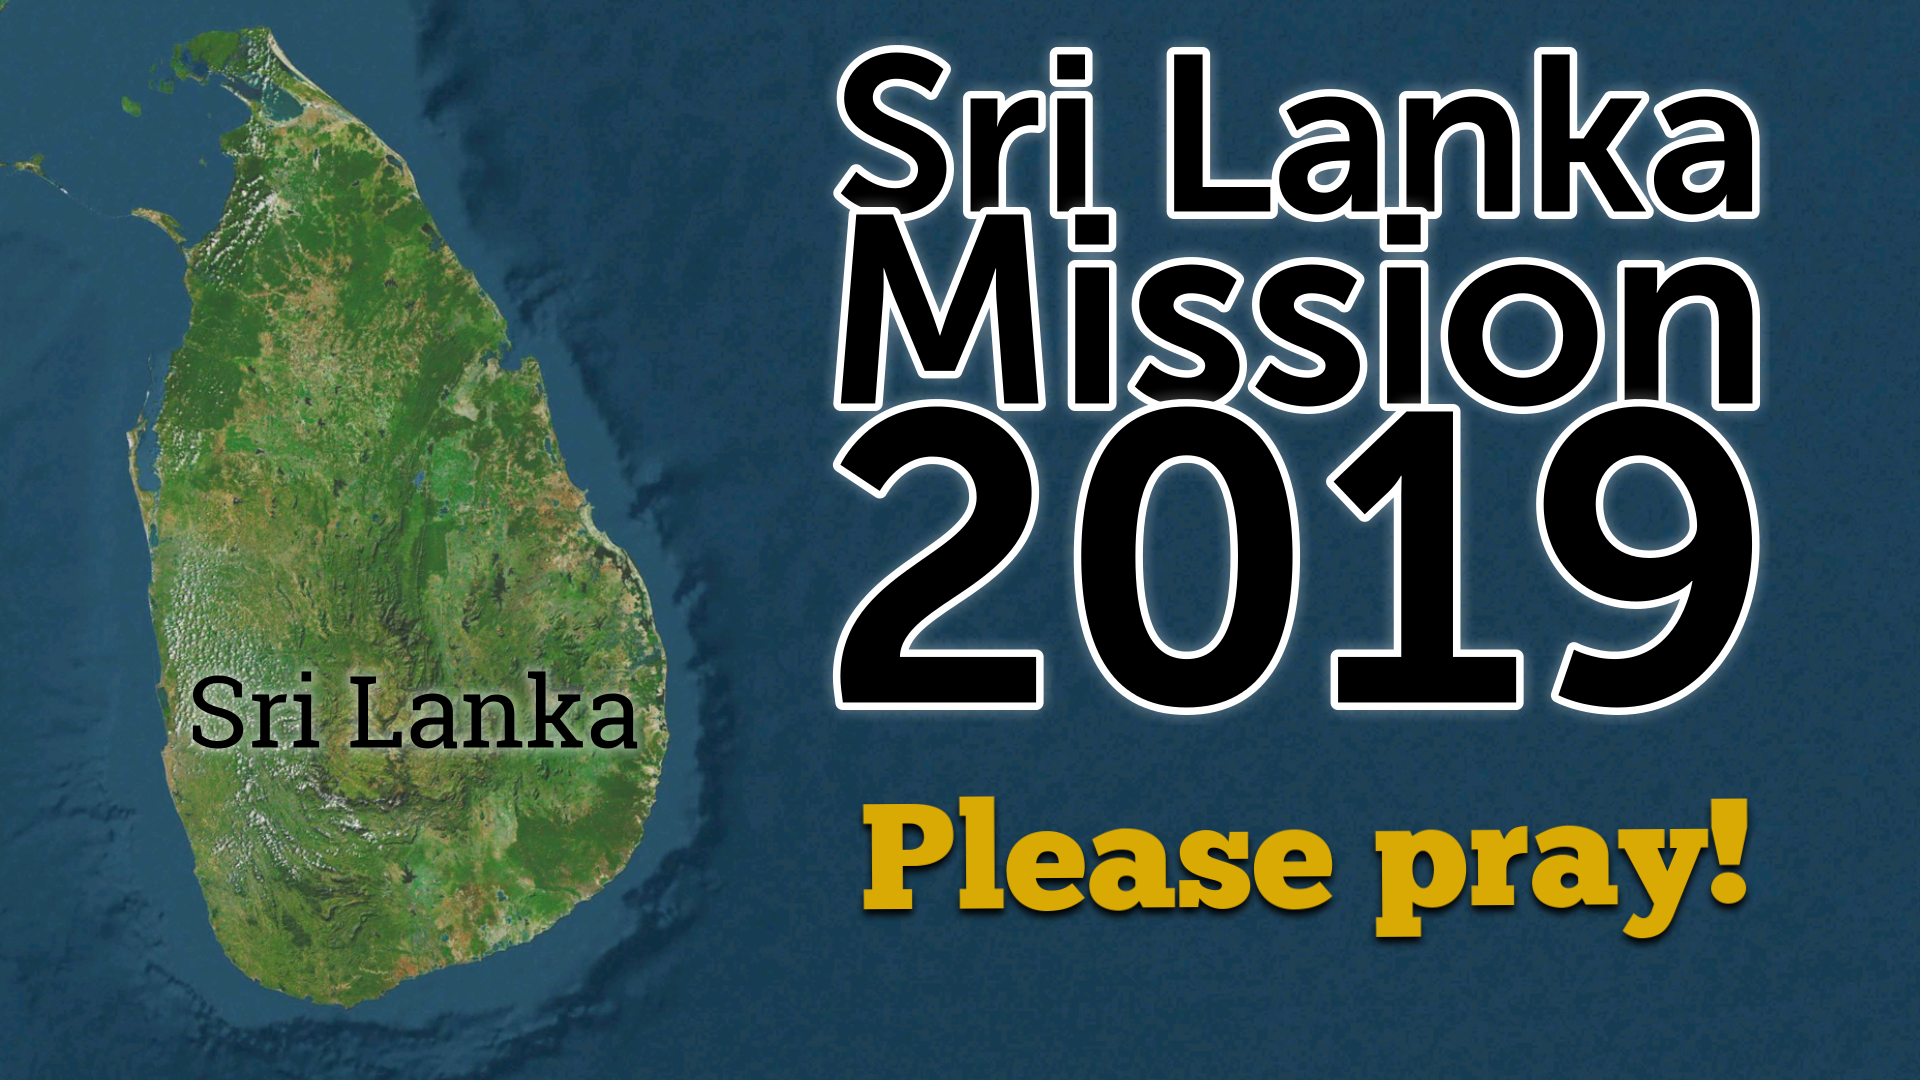 Update #13: Sri Lanka Mission 2019